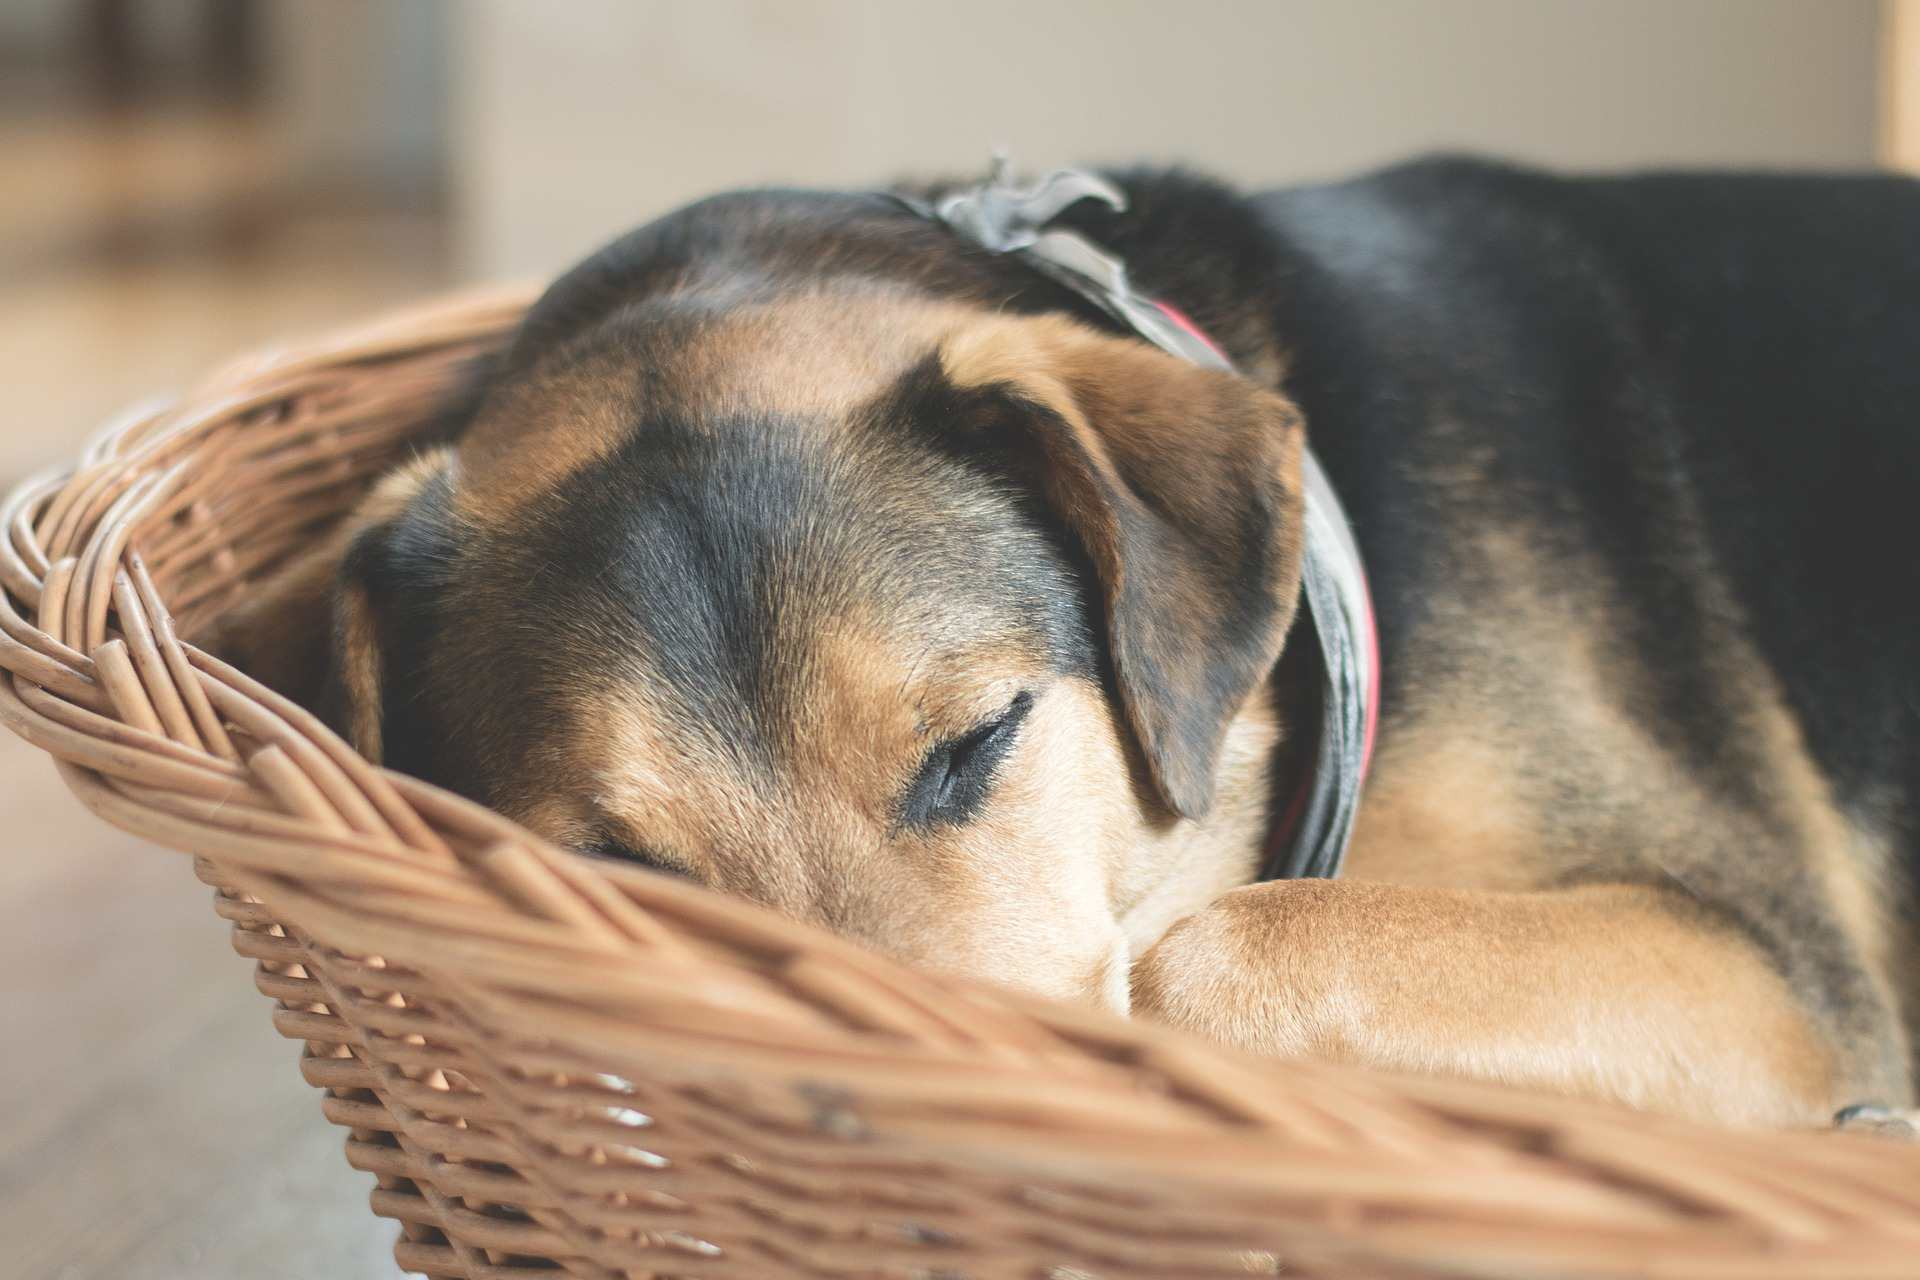 Dog curled up sleeping in a basket